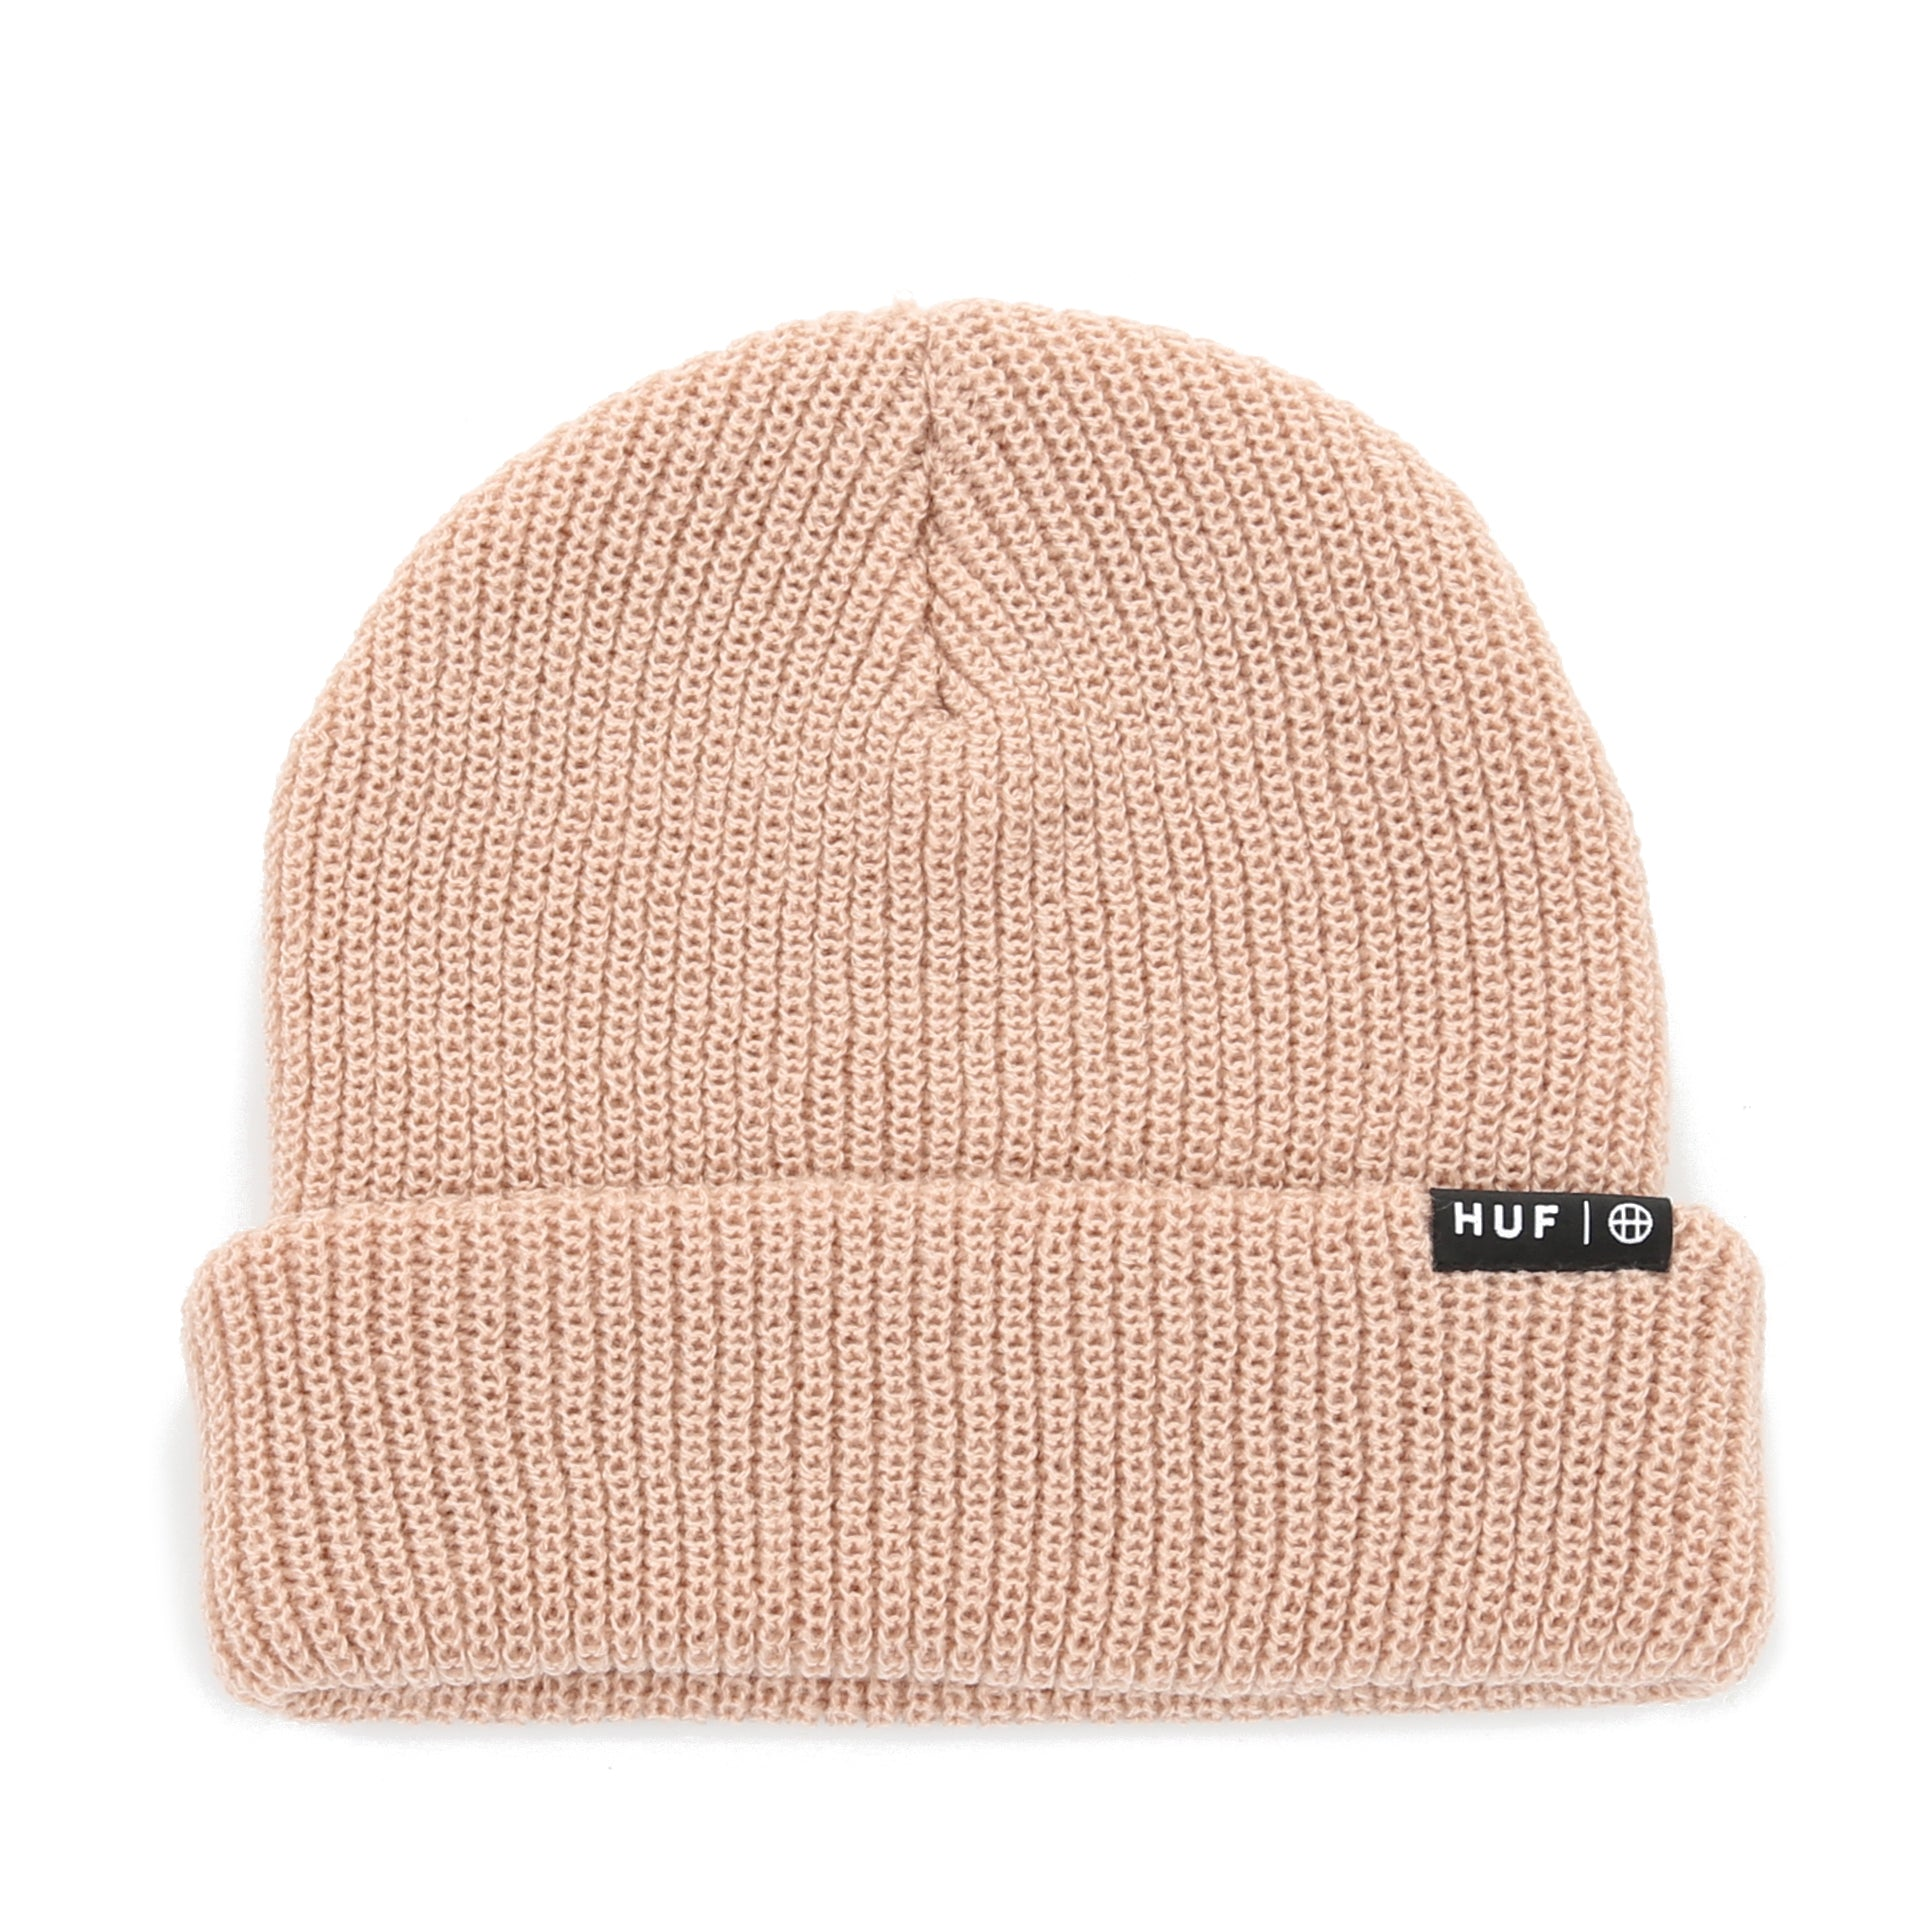 679bb0a5951 Huf Usual Beanie - Dusty Pink - New Star